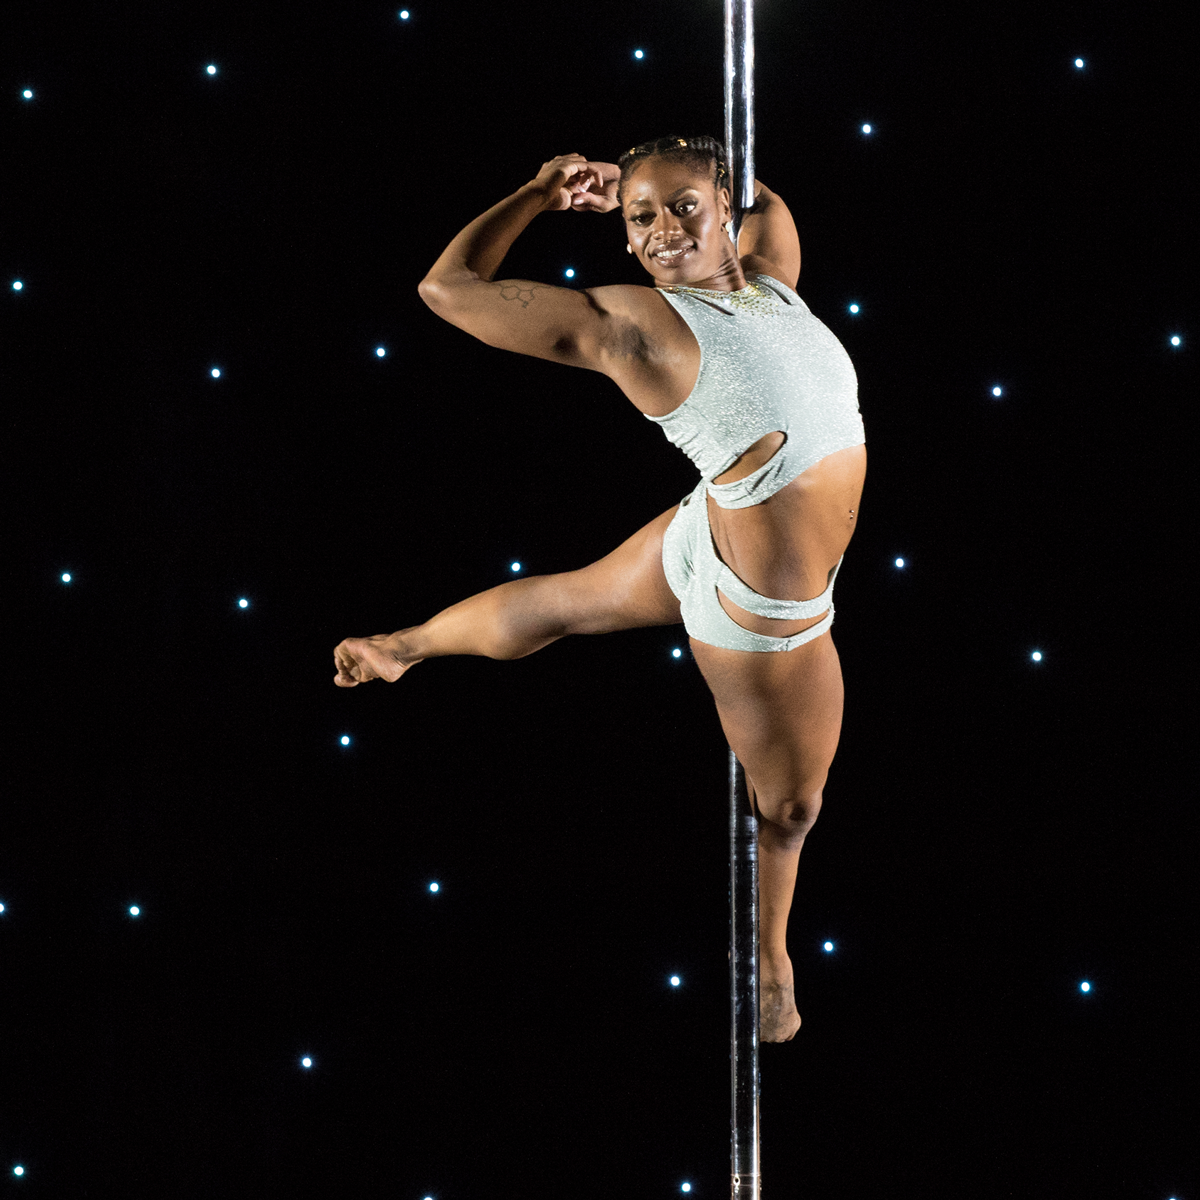 Candi Marie is in a twisted upright pose on a pole